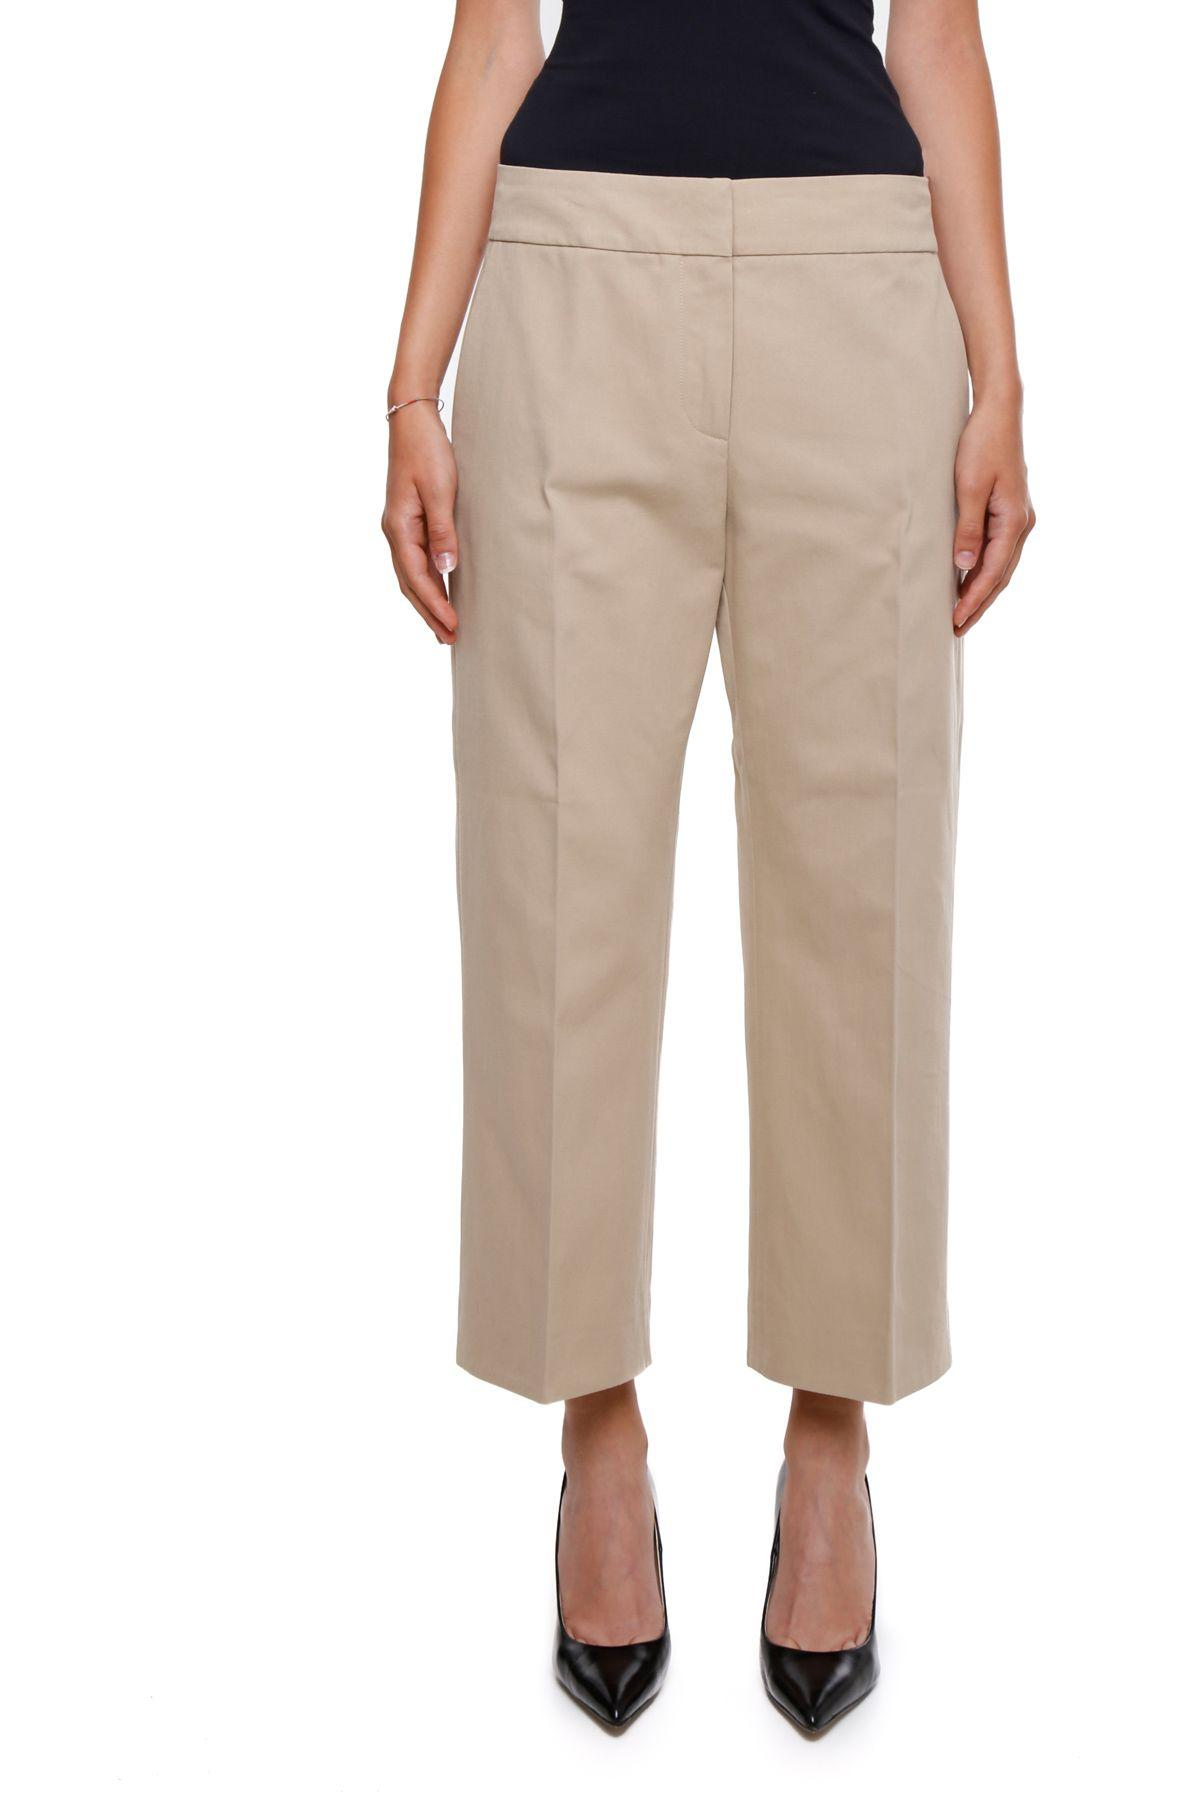 Marni Trousers In Light Camelbeige